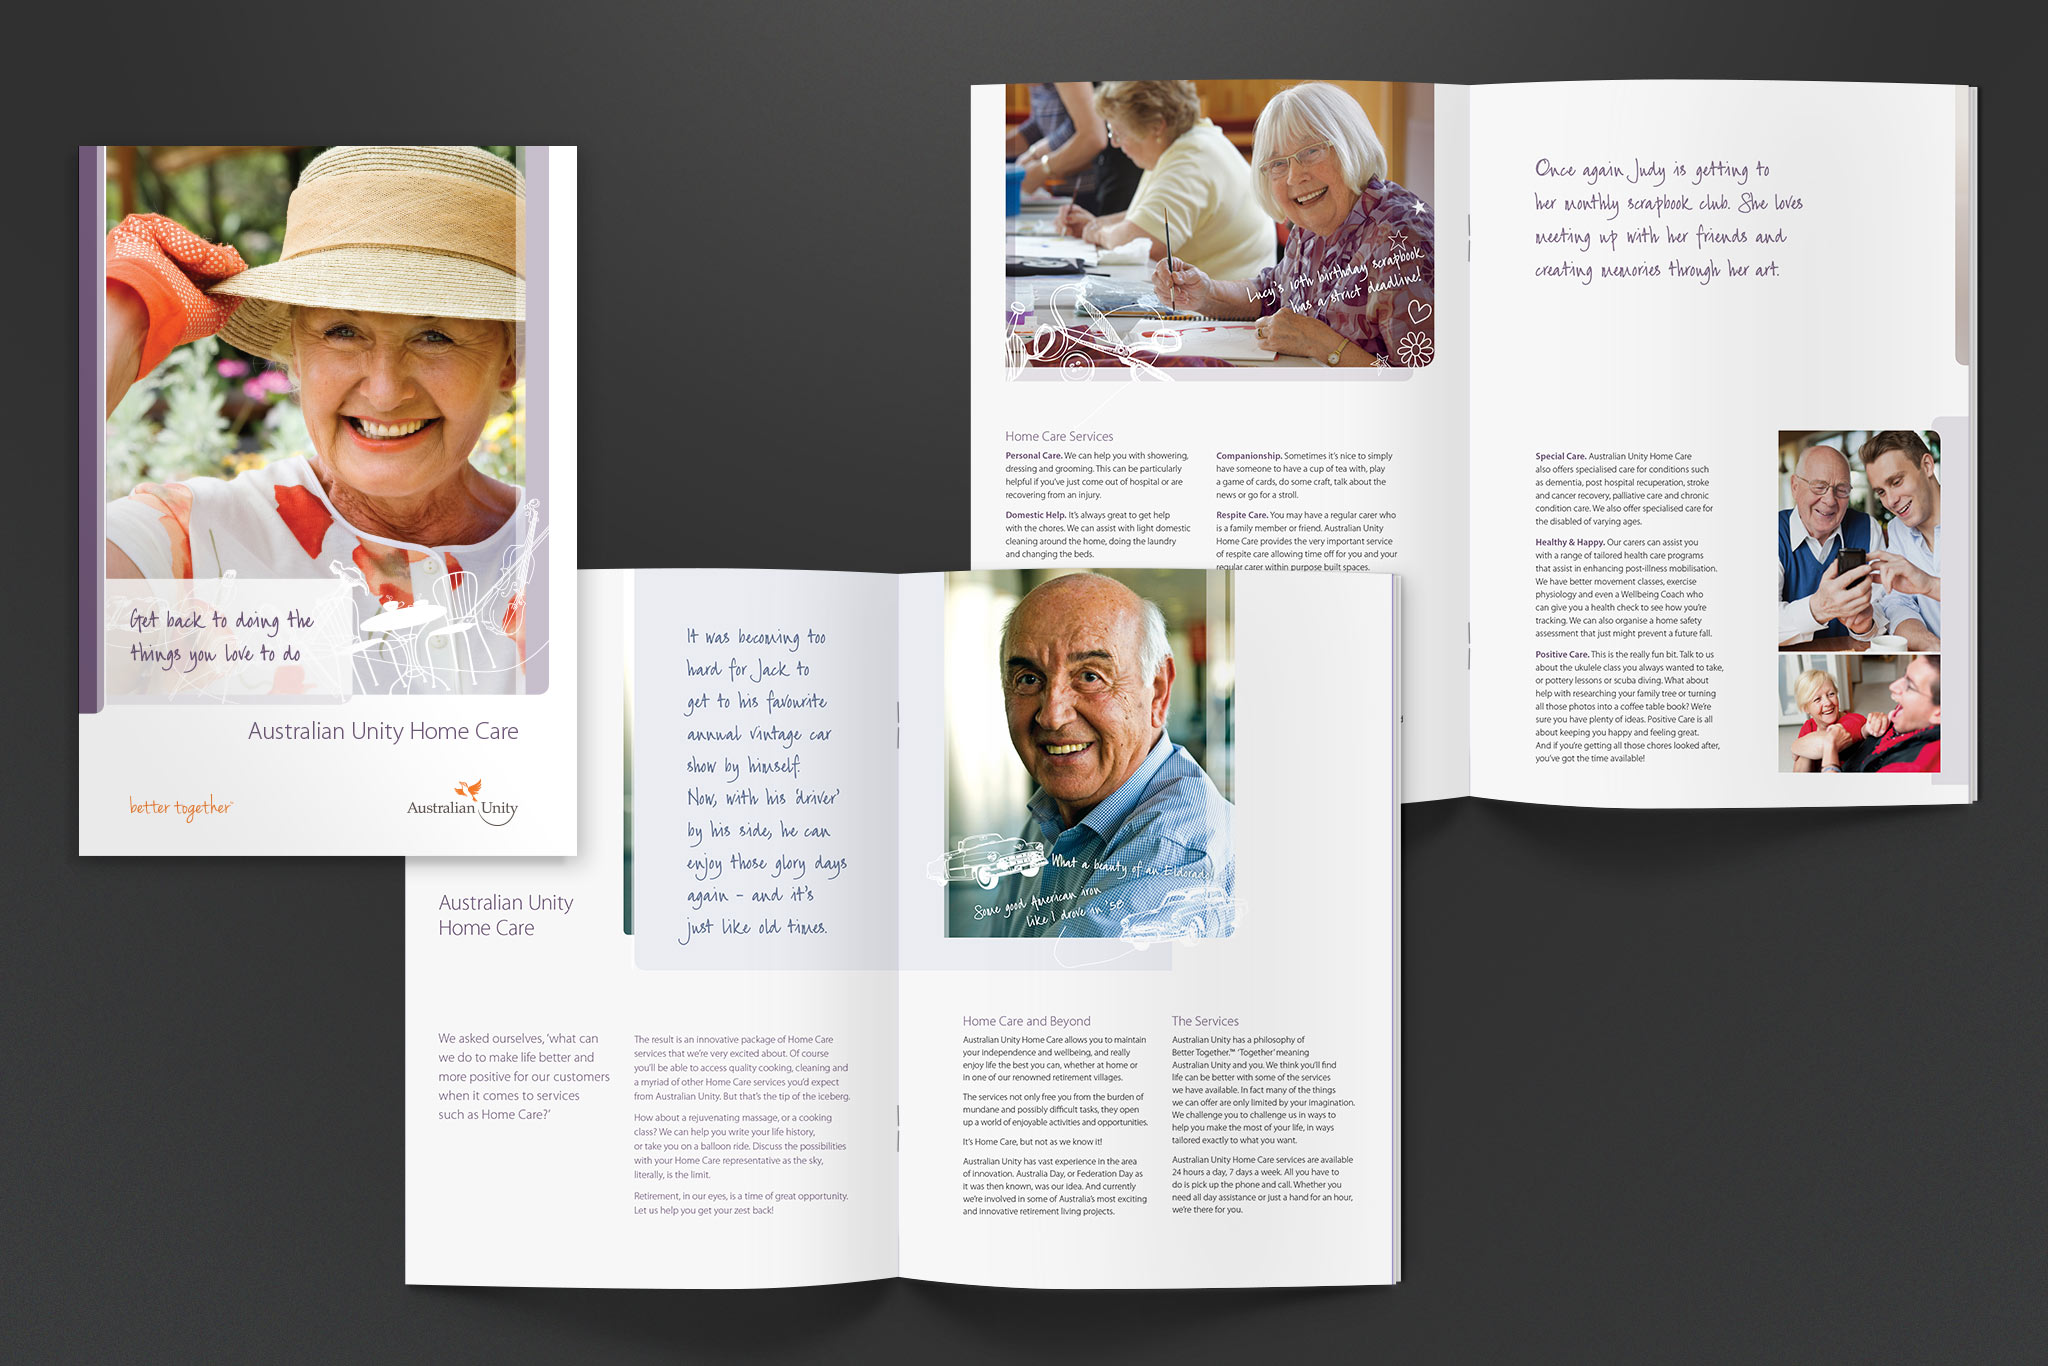 australian-unity-gallery-6-home-care-brochure